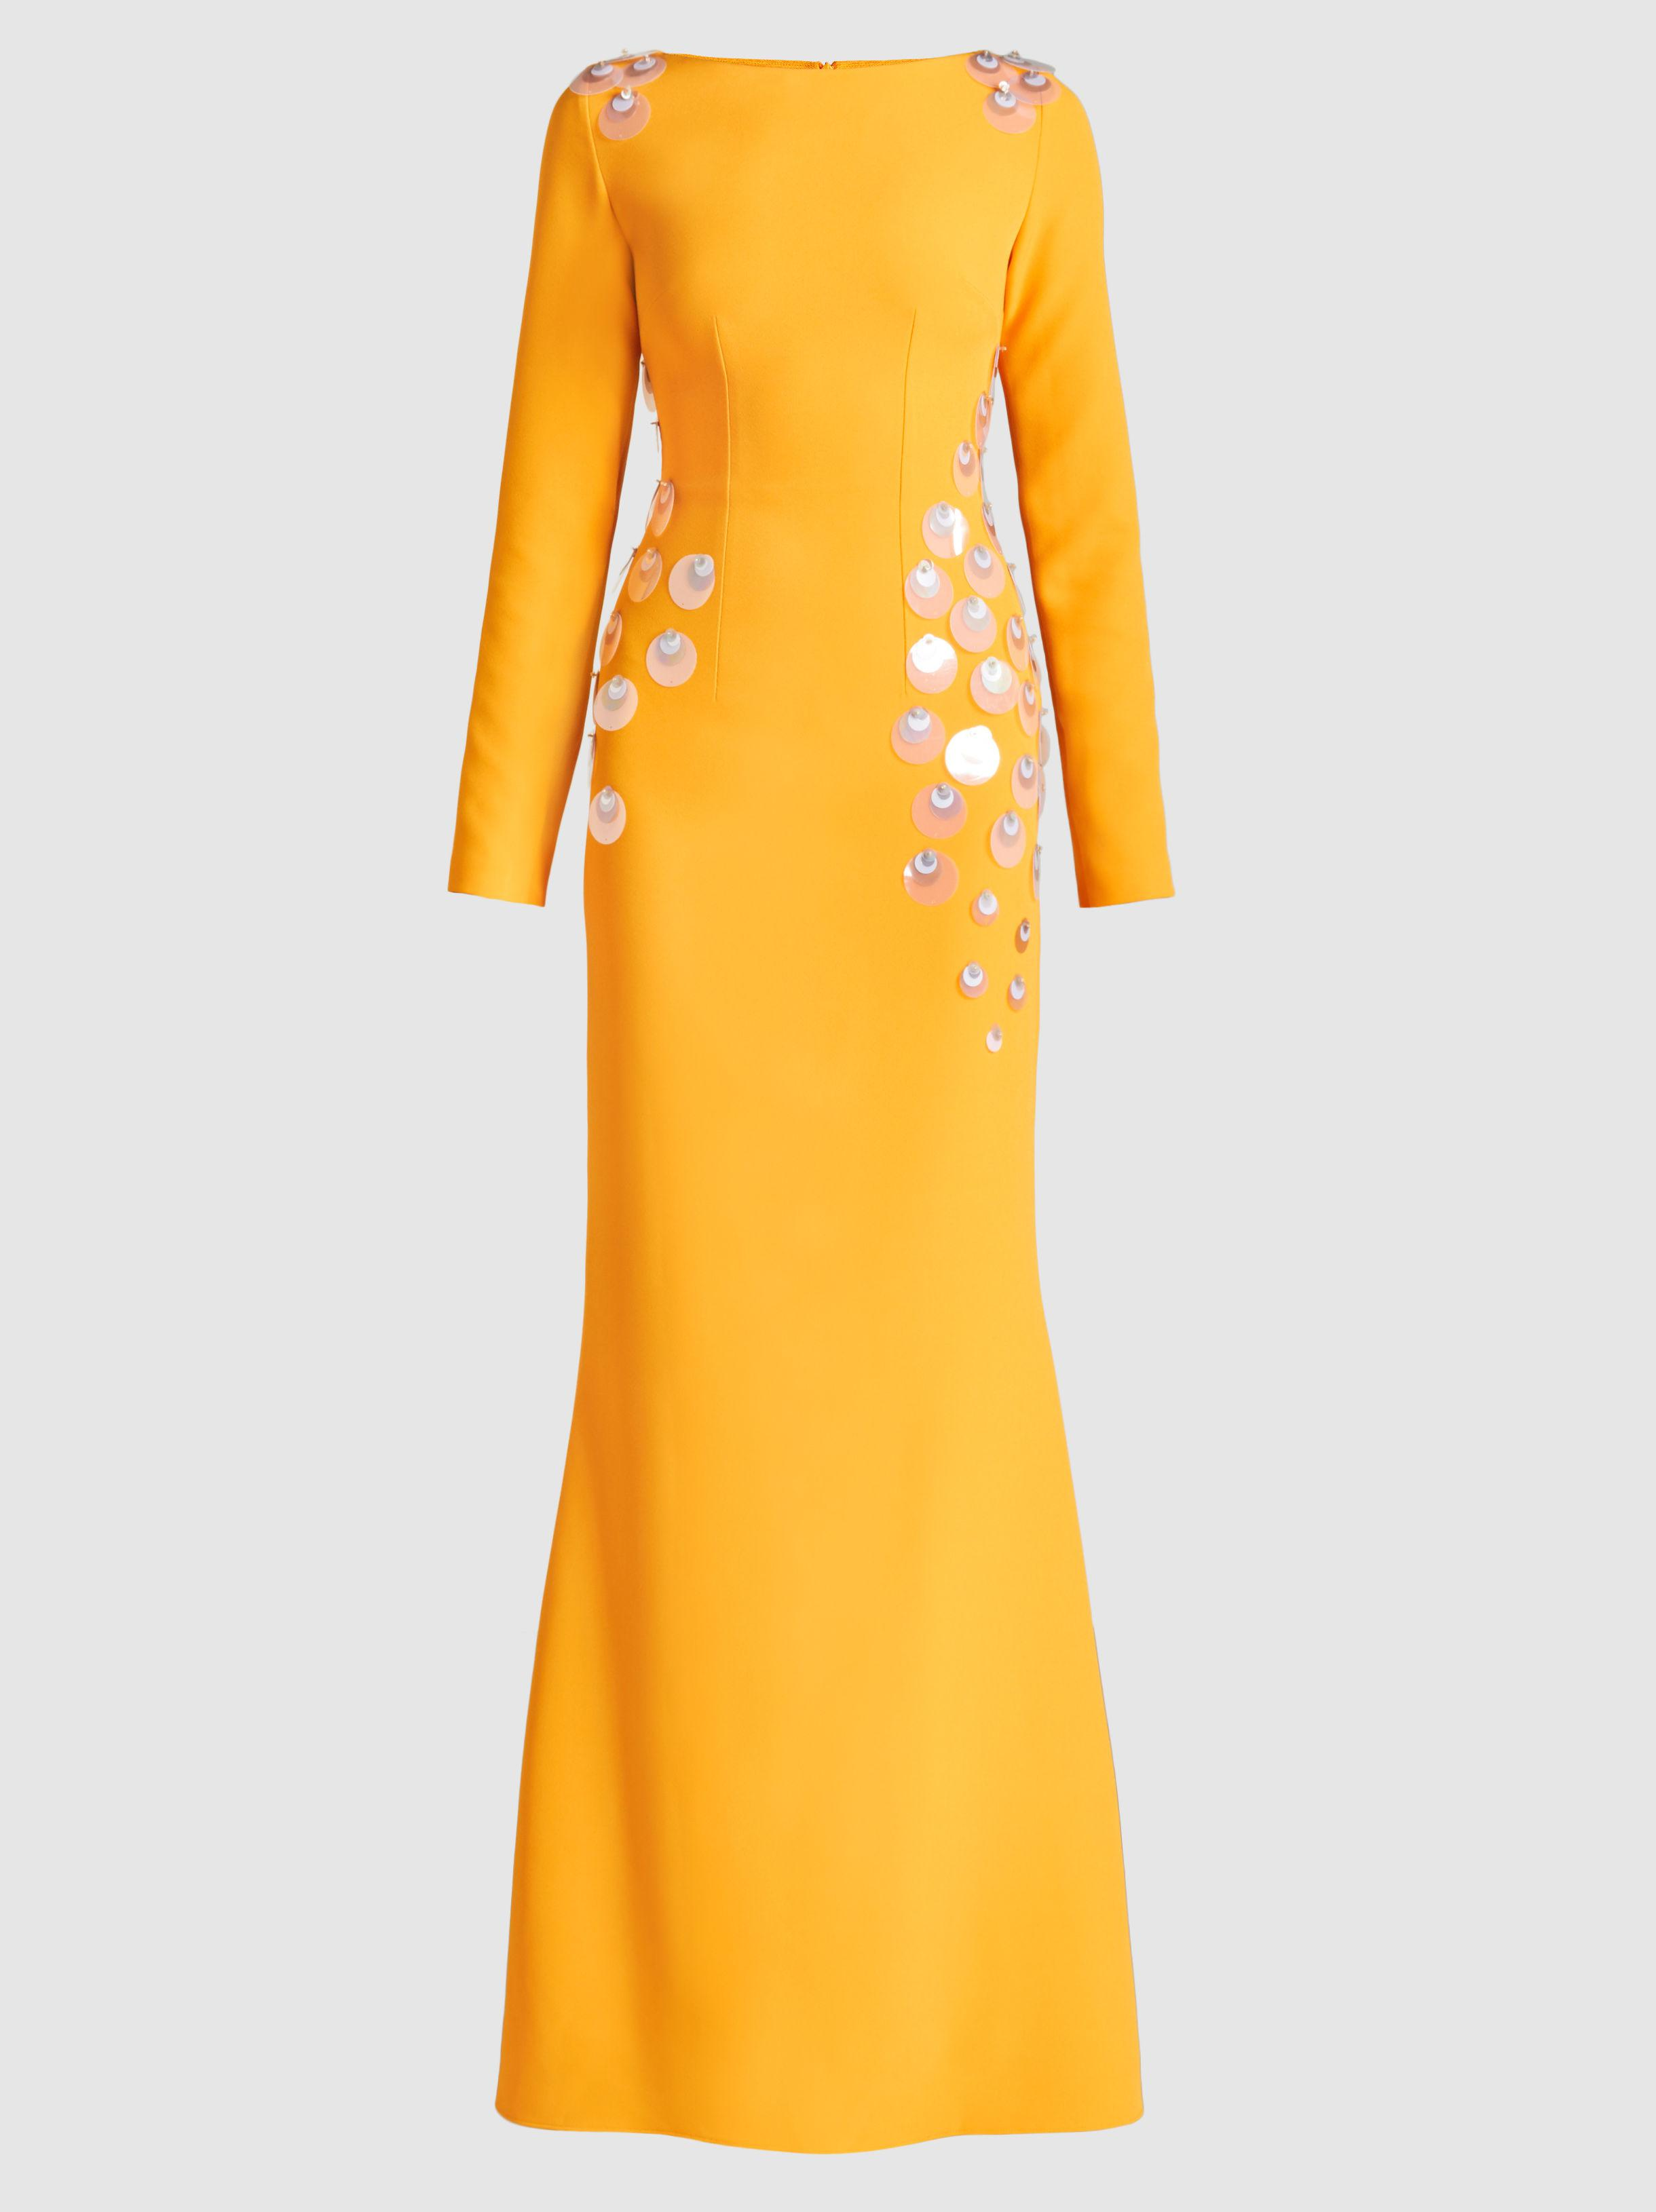 Paillette-Embellished Crepe Gown SAFiYAA Clearance Recommend Footlocker Pictures Sale Online Clearance bAXtM77JNe